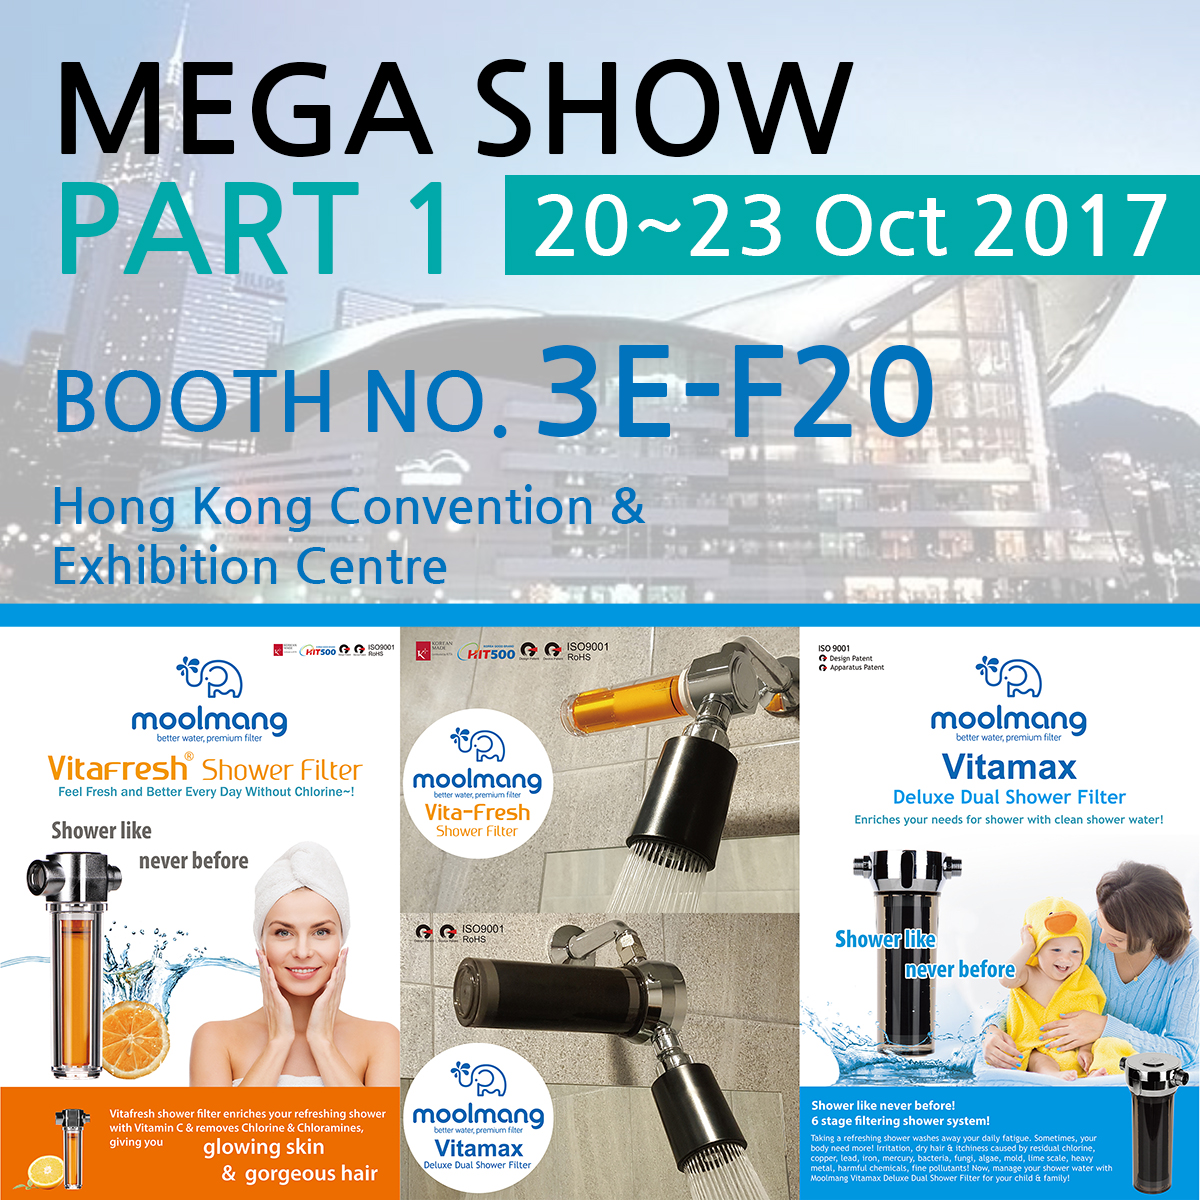 moolmang vitafresh vitamax shower filter hong kong megashow 2017